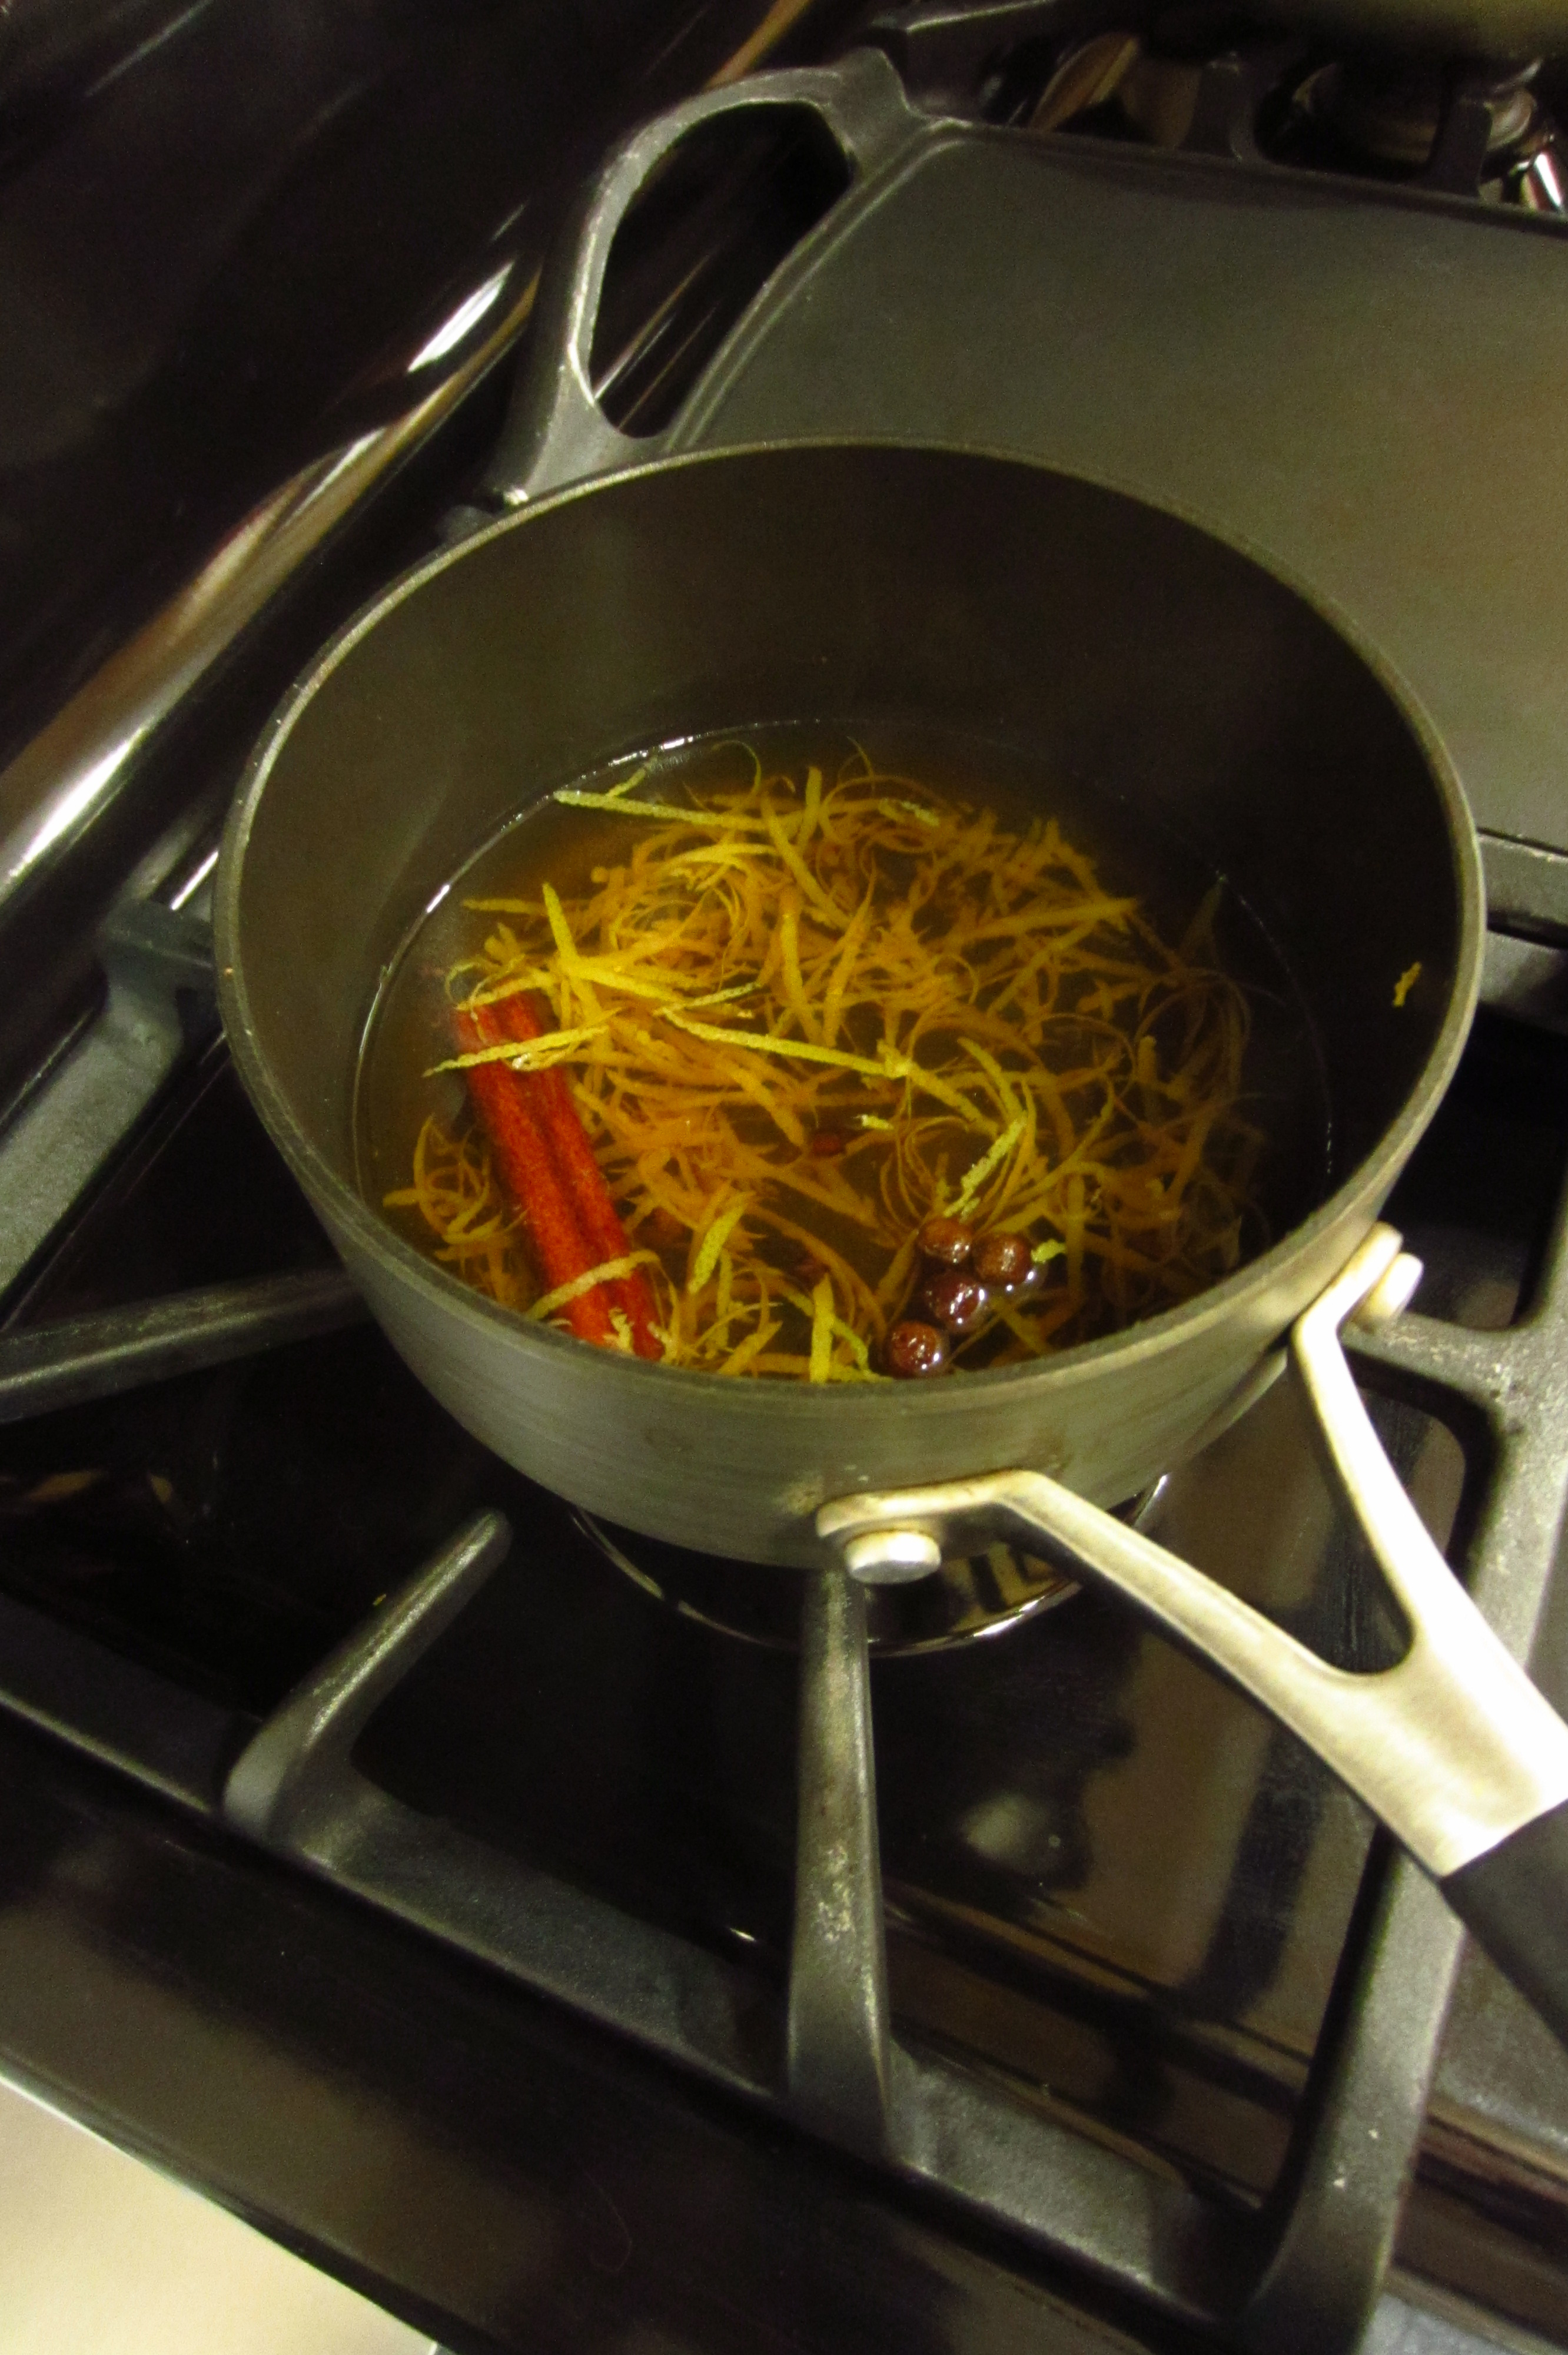 heating zest and spices in bourbon